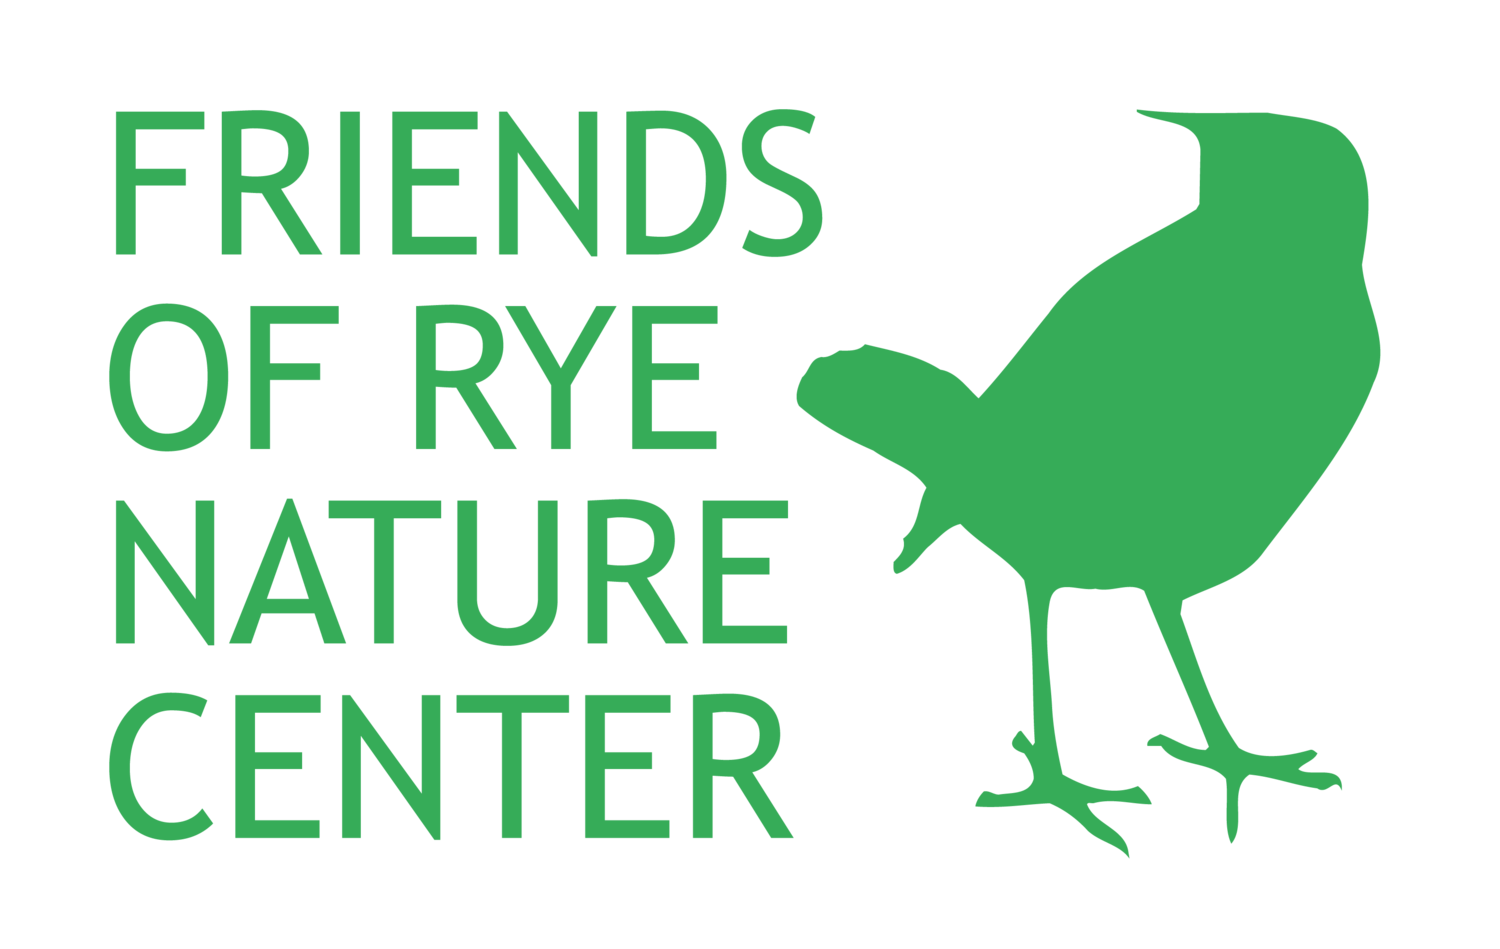 Friends of Rye Nature Center